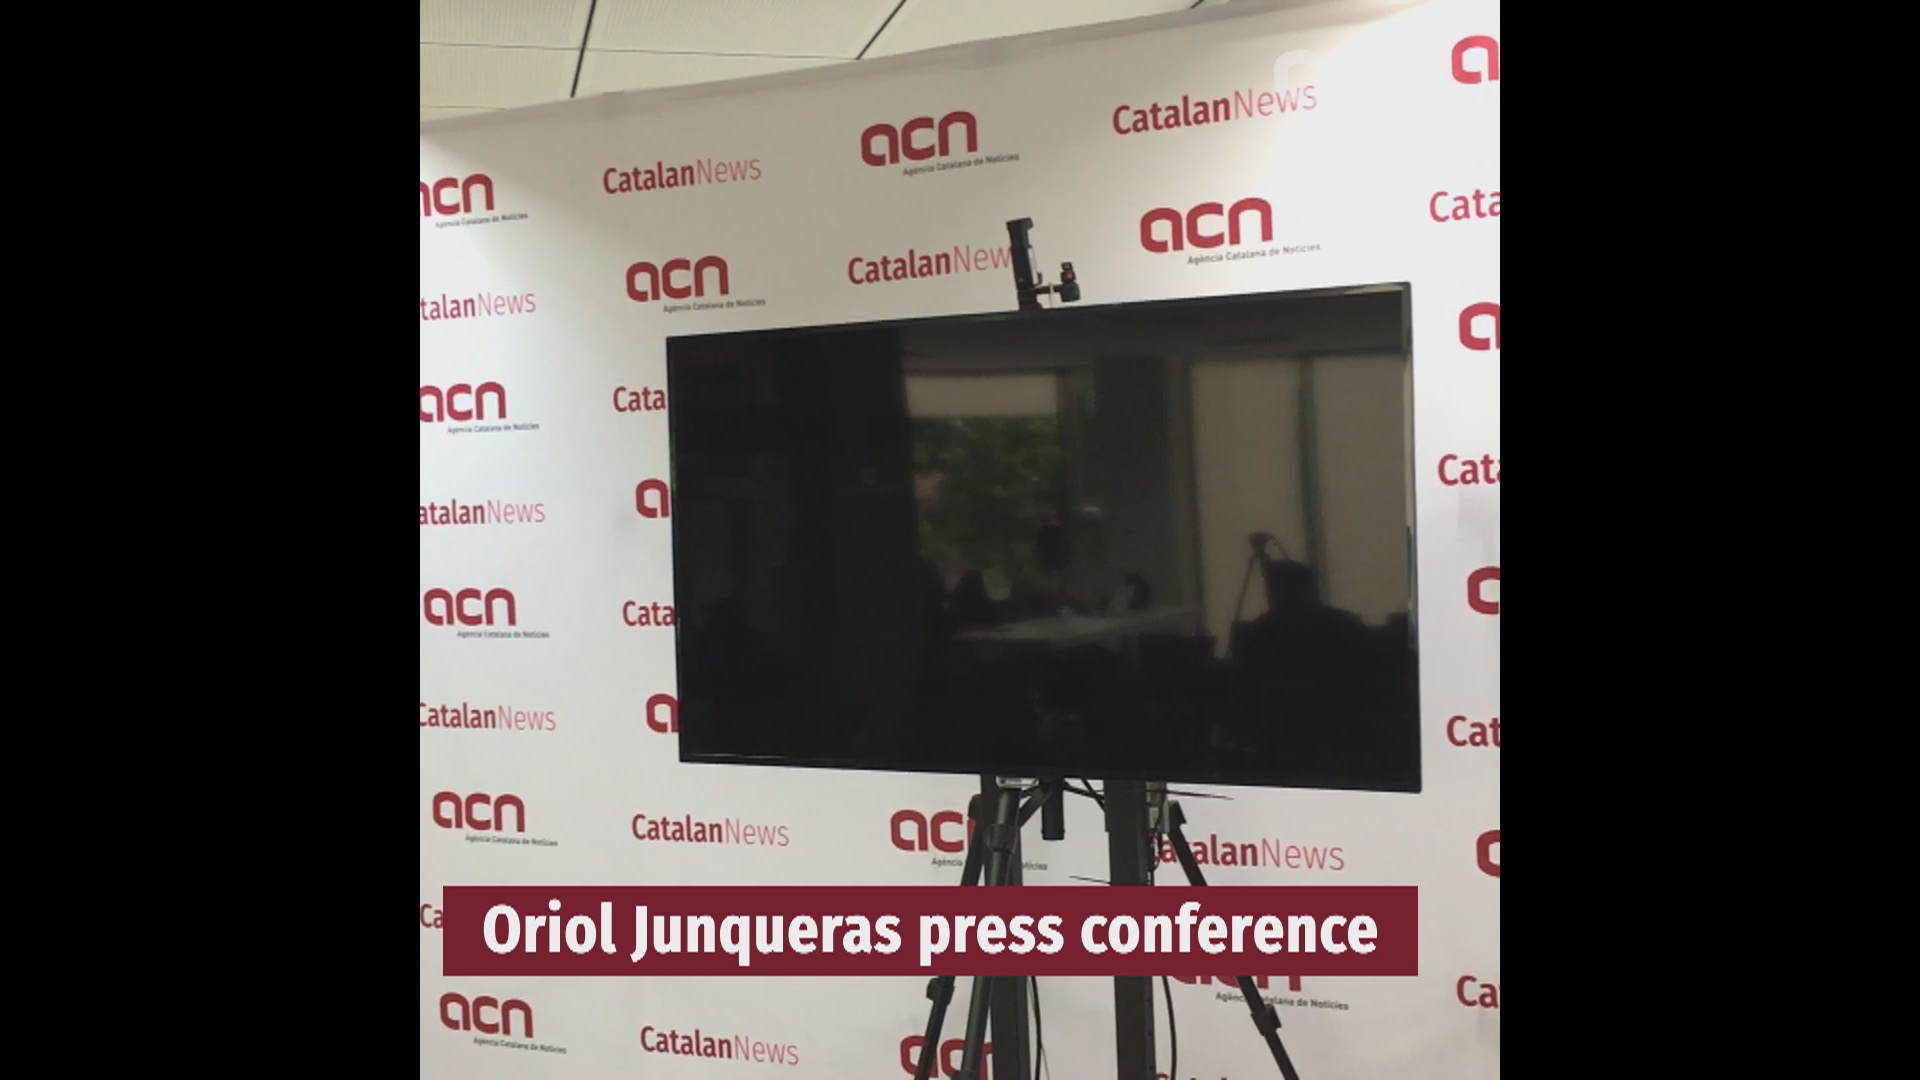 Oriol Junqueras press conference via video link, hosted by the Catalan News Agency